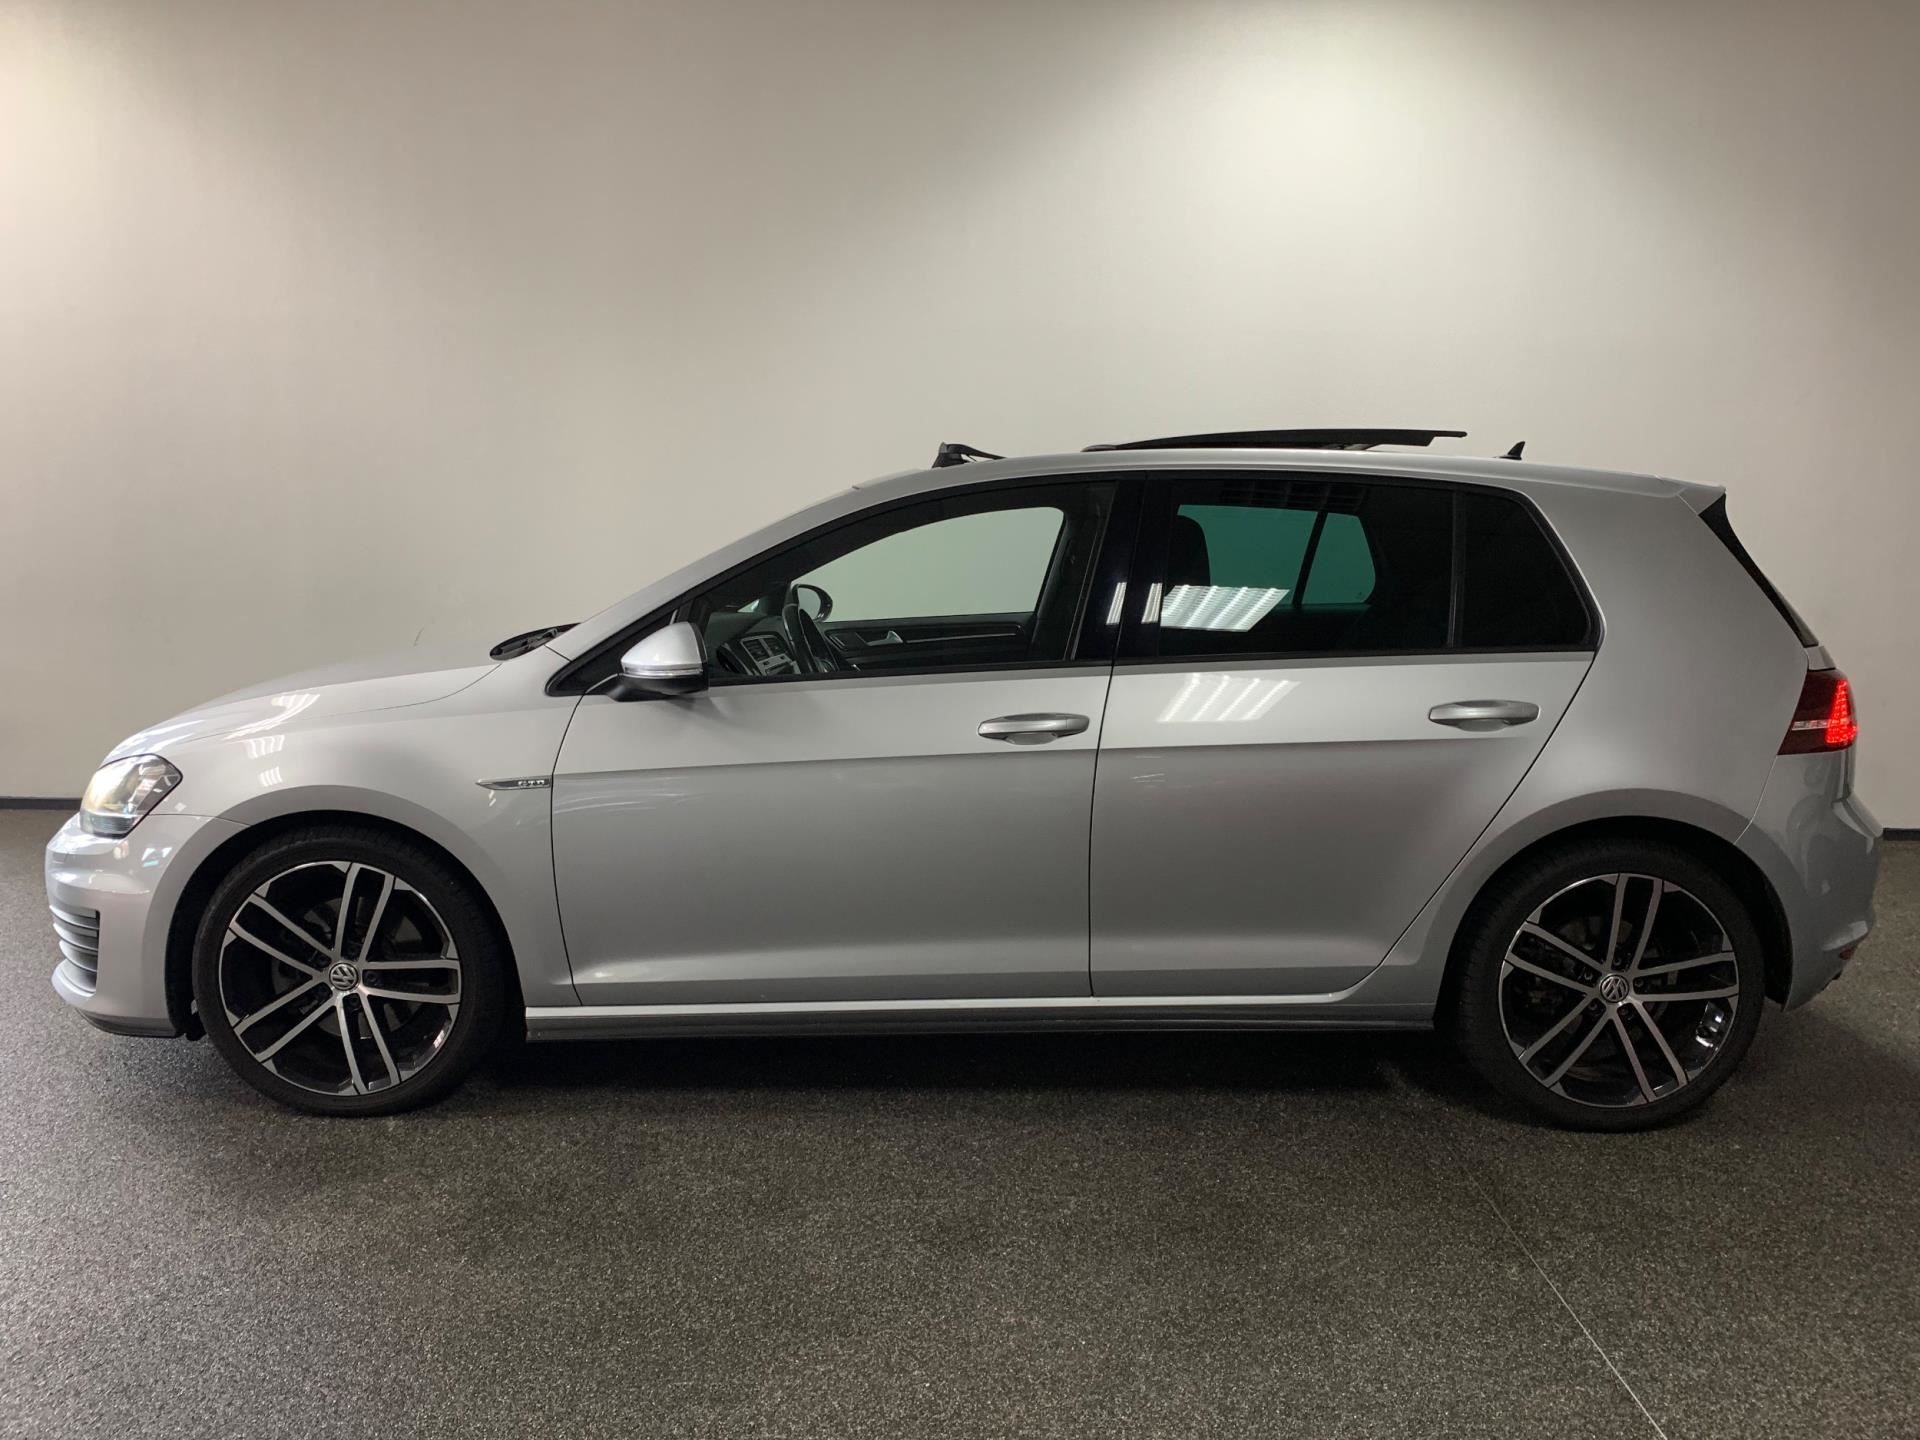 Volkswagen Golf 7 GTD Dynaudio occasion - ACE Cars Exclusive